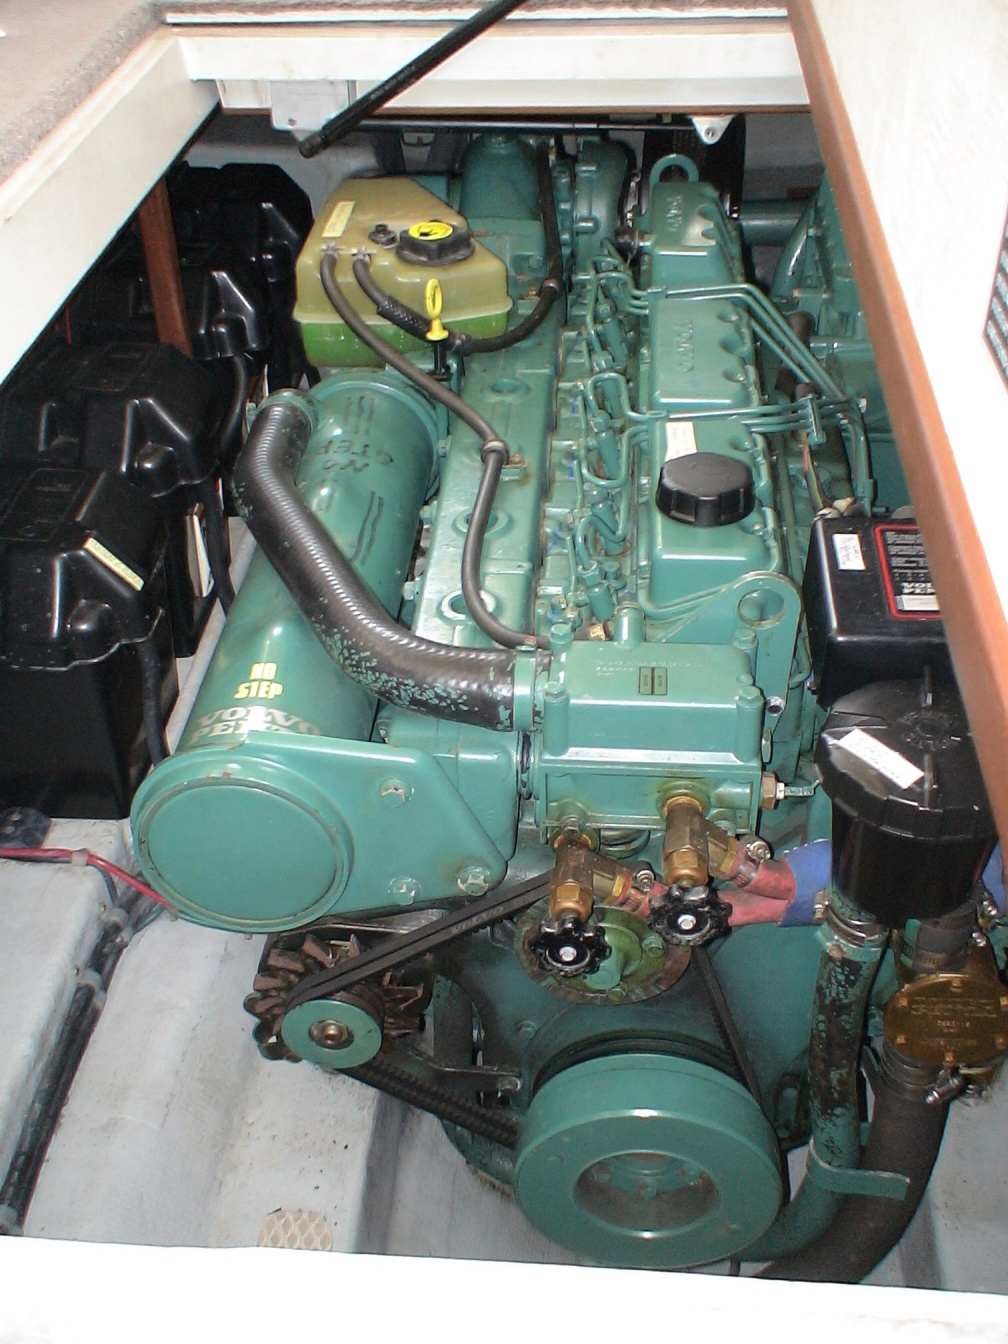 Click image for larger version  Name:Engine04.jpg Views:143 Size:430.6 KB ID:100685